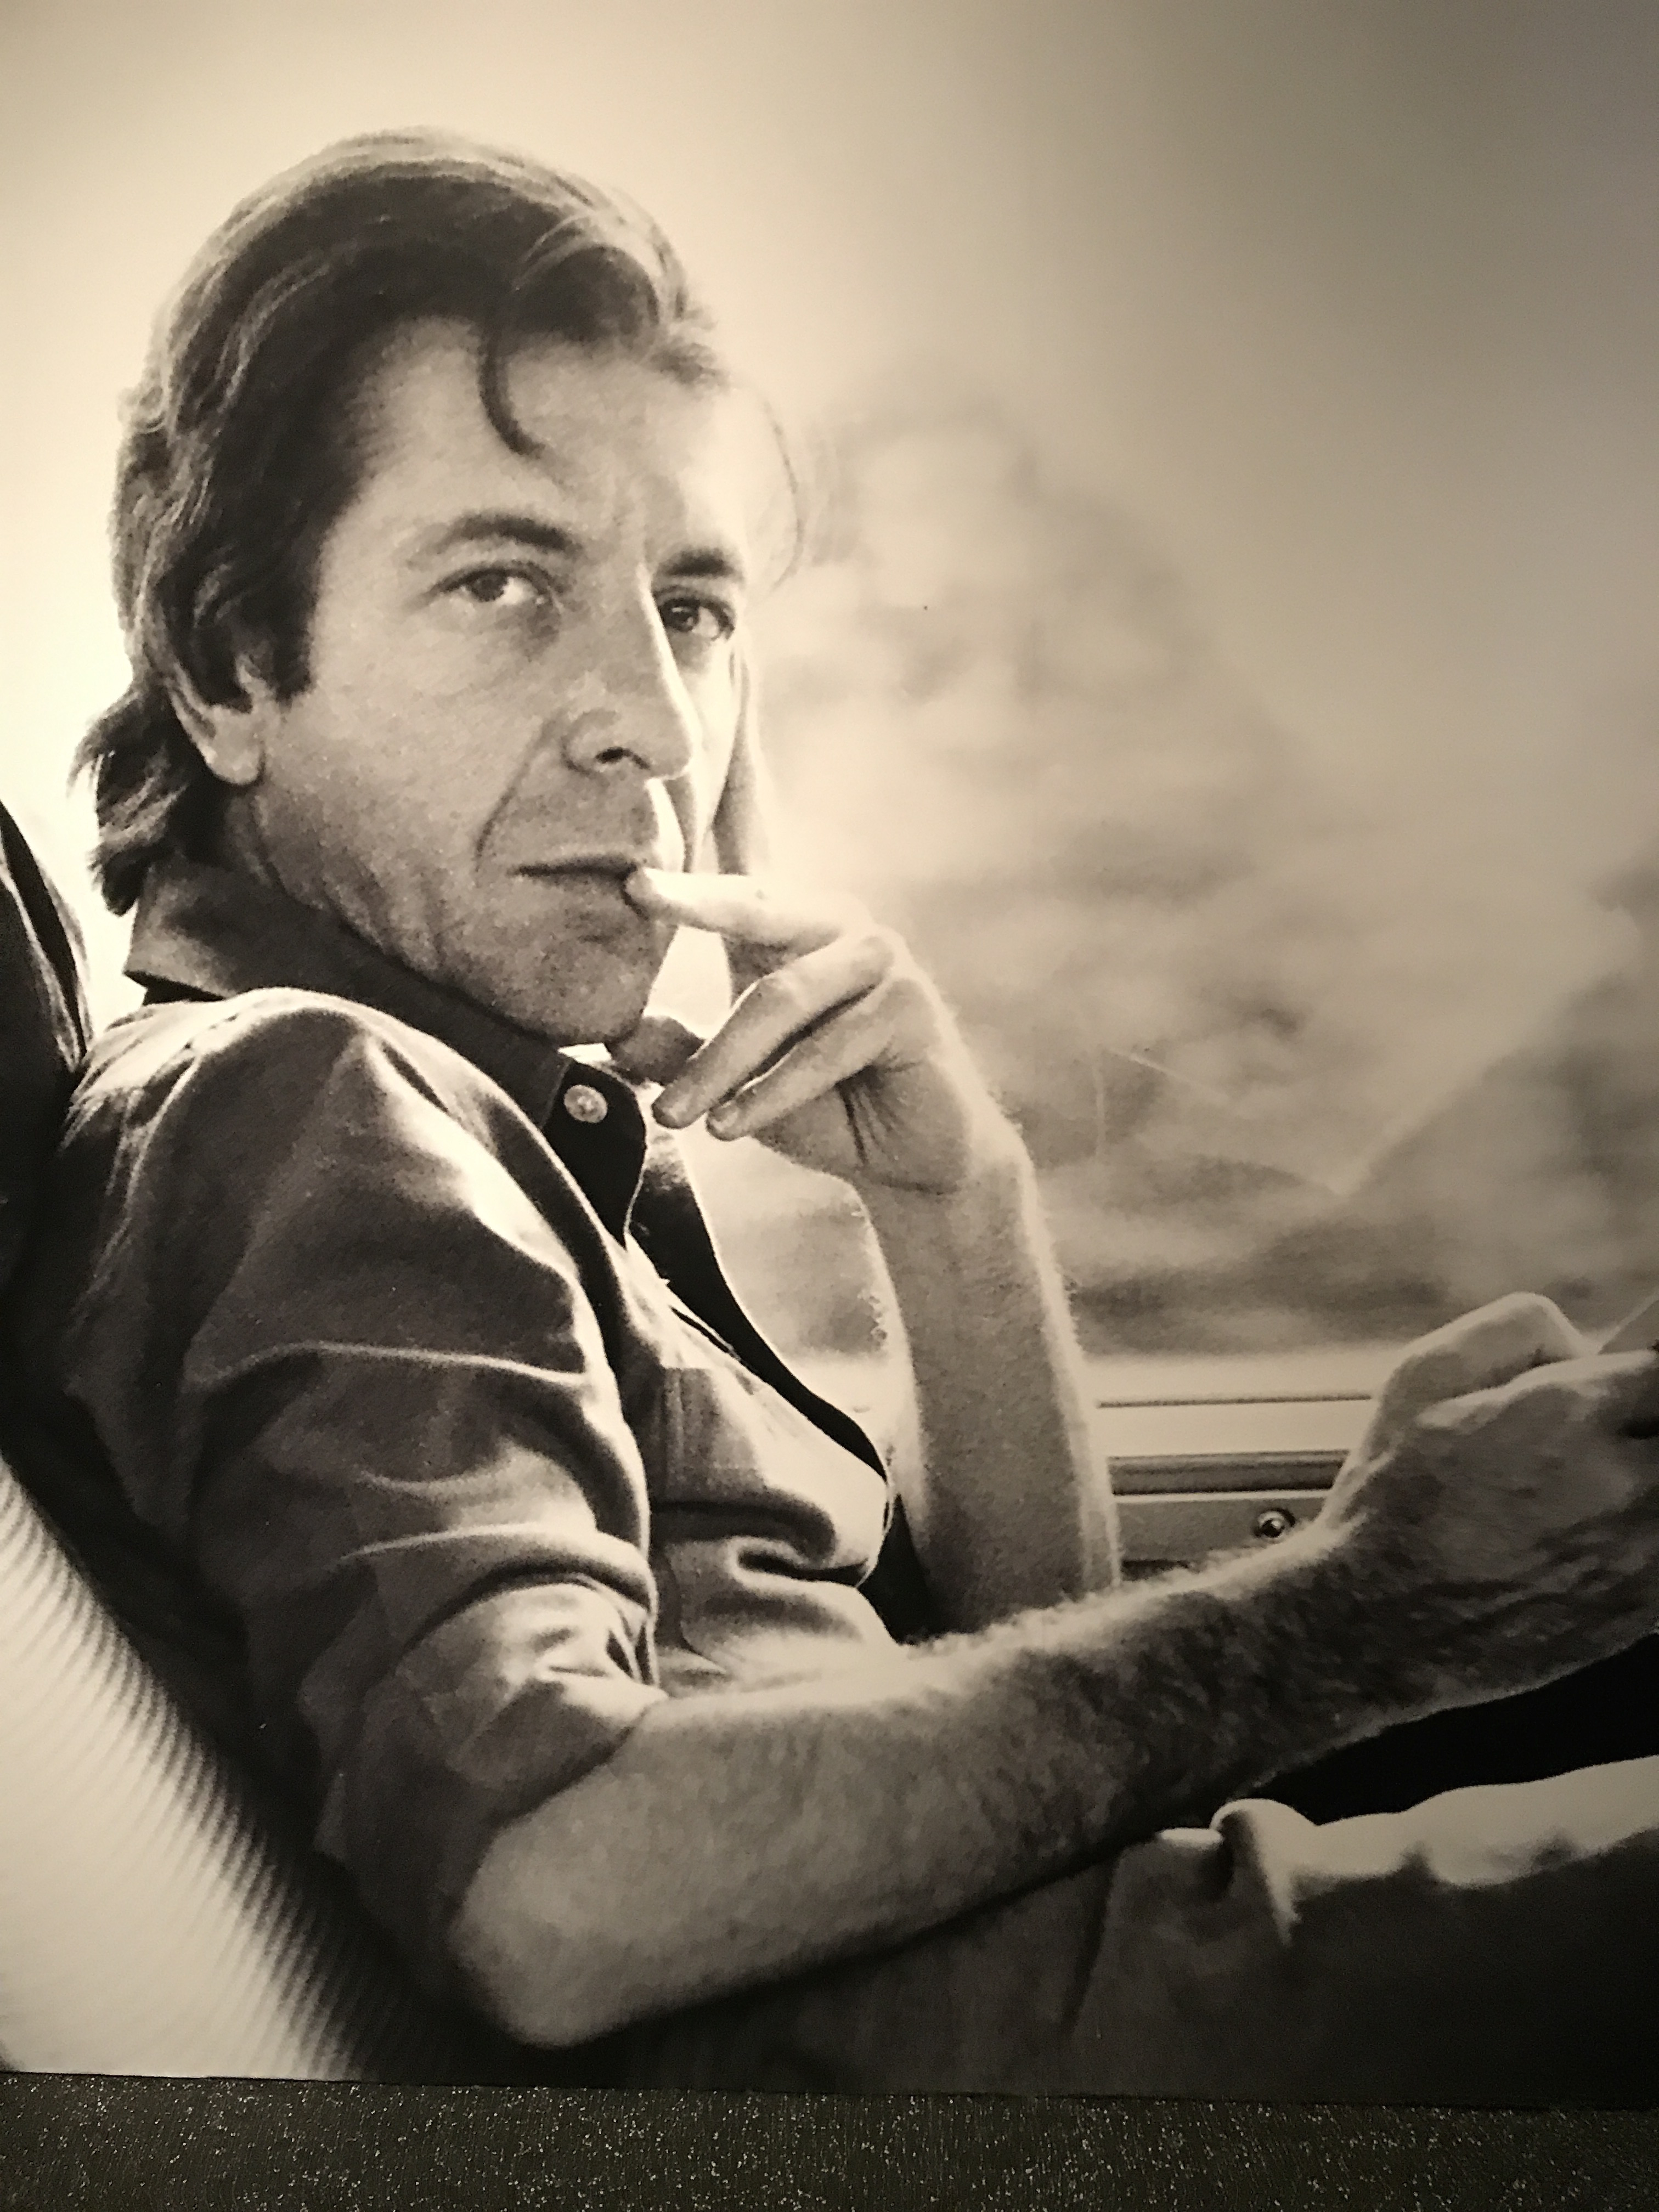 Leonard Cohen exhibit at the Jewish museum A Crack in Everything (photo of Cohen)